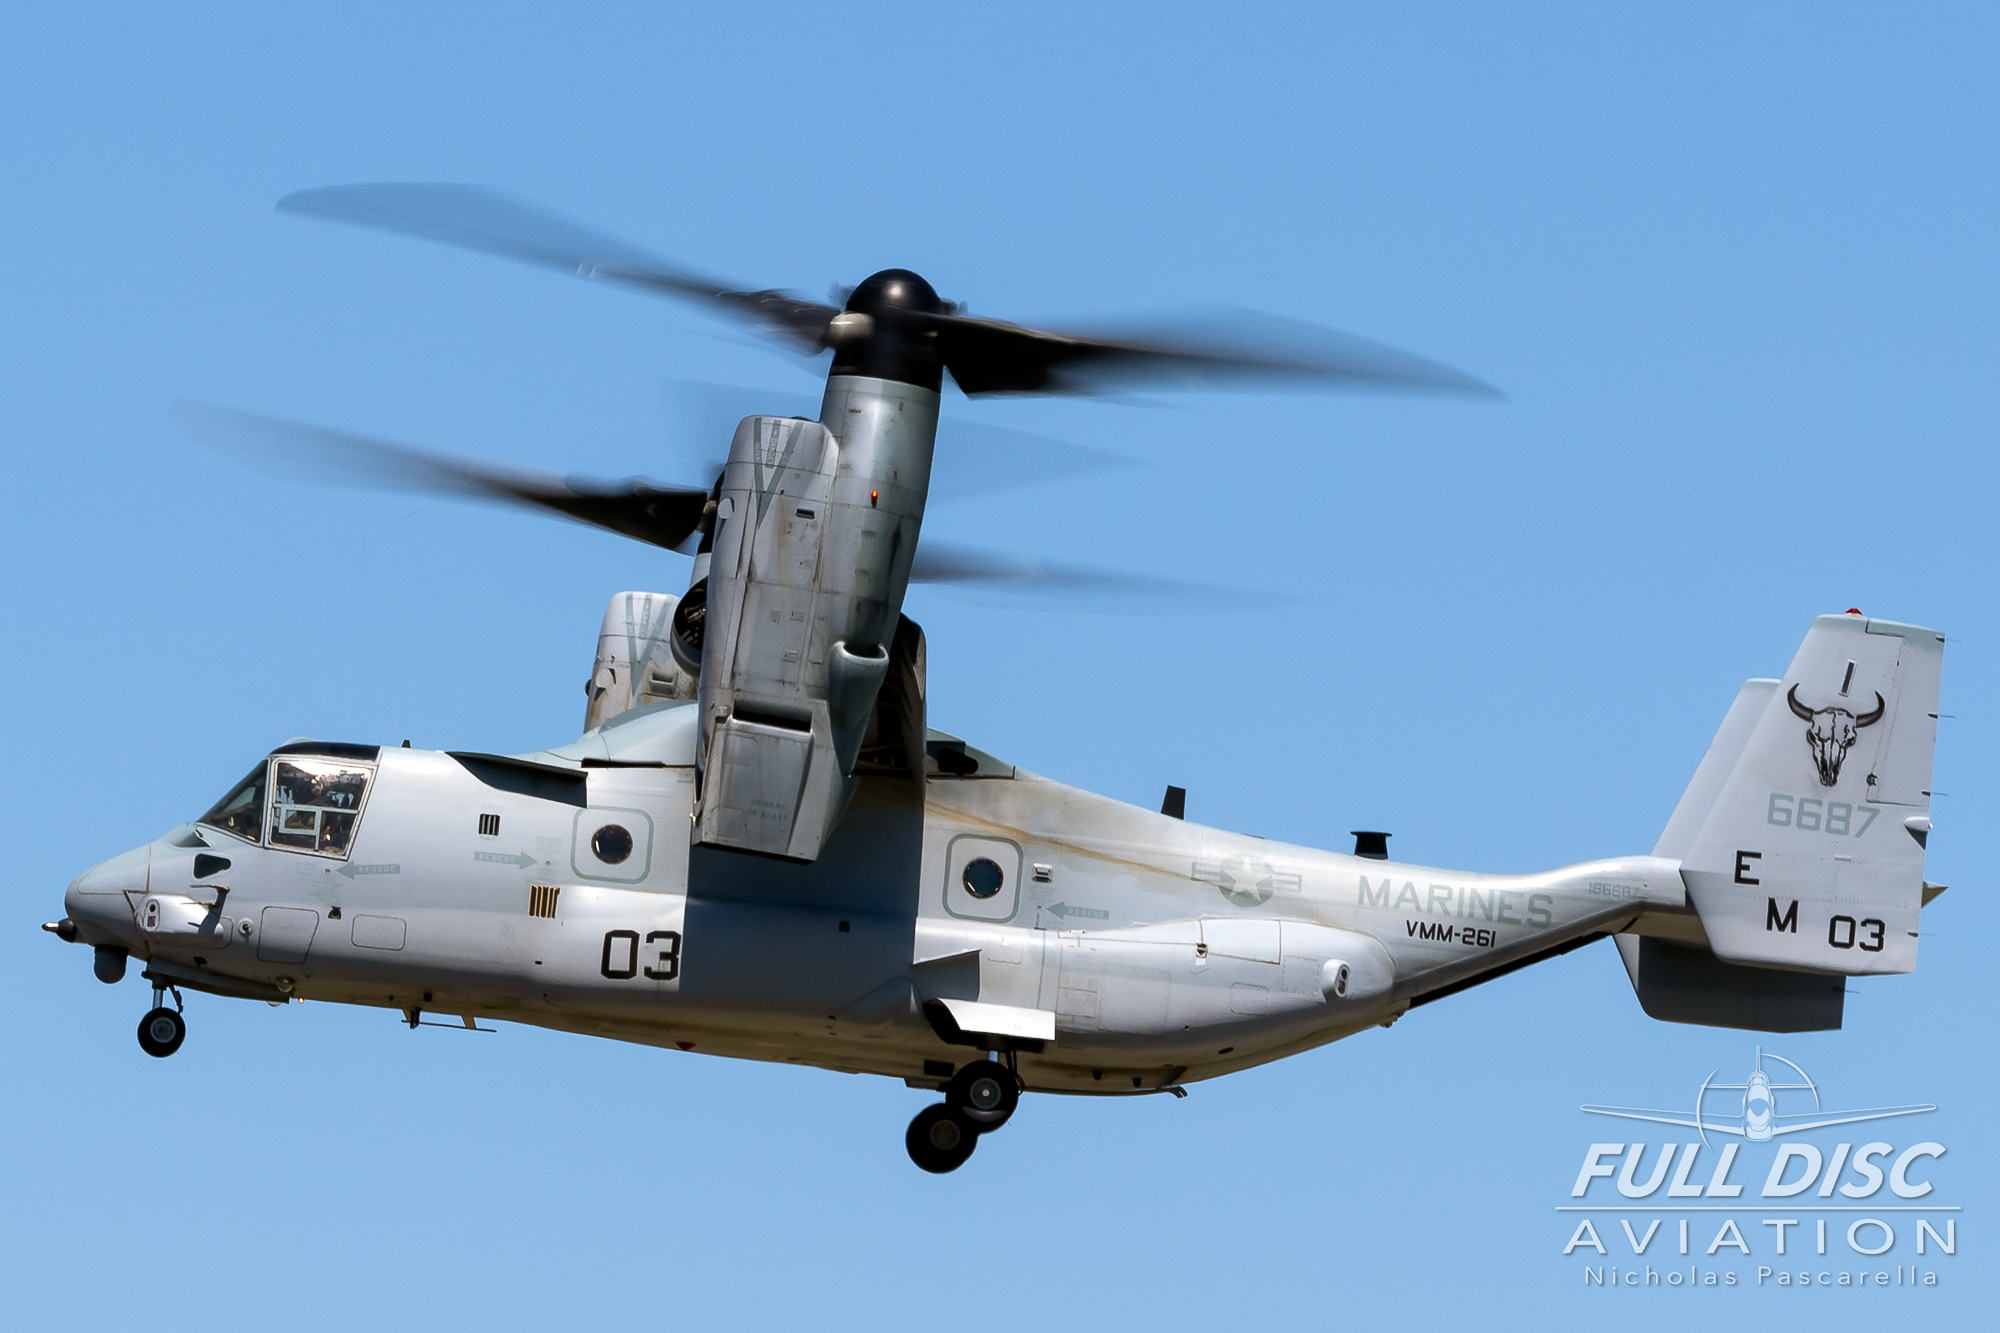 osprey_mcasbeaufort_nicholaspascarella_fulldiscavation_aviation_airshow.jpg